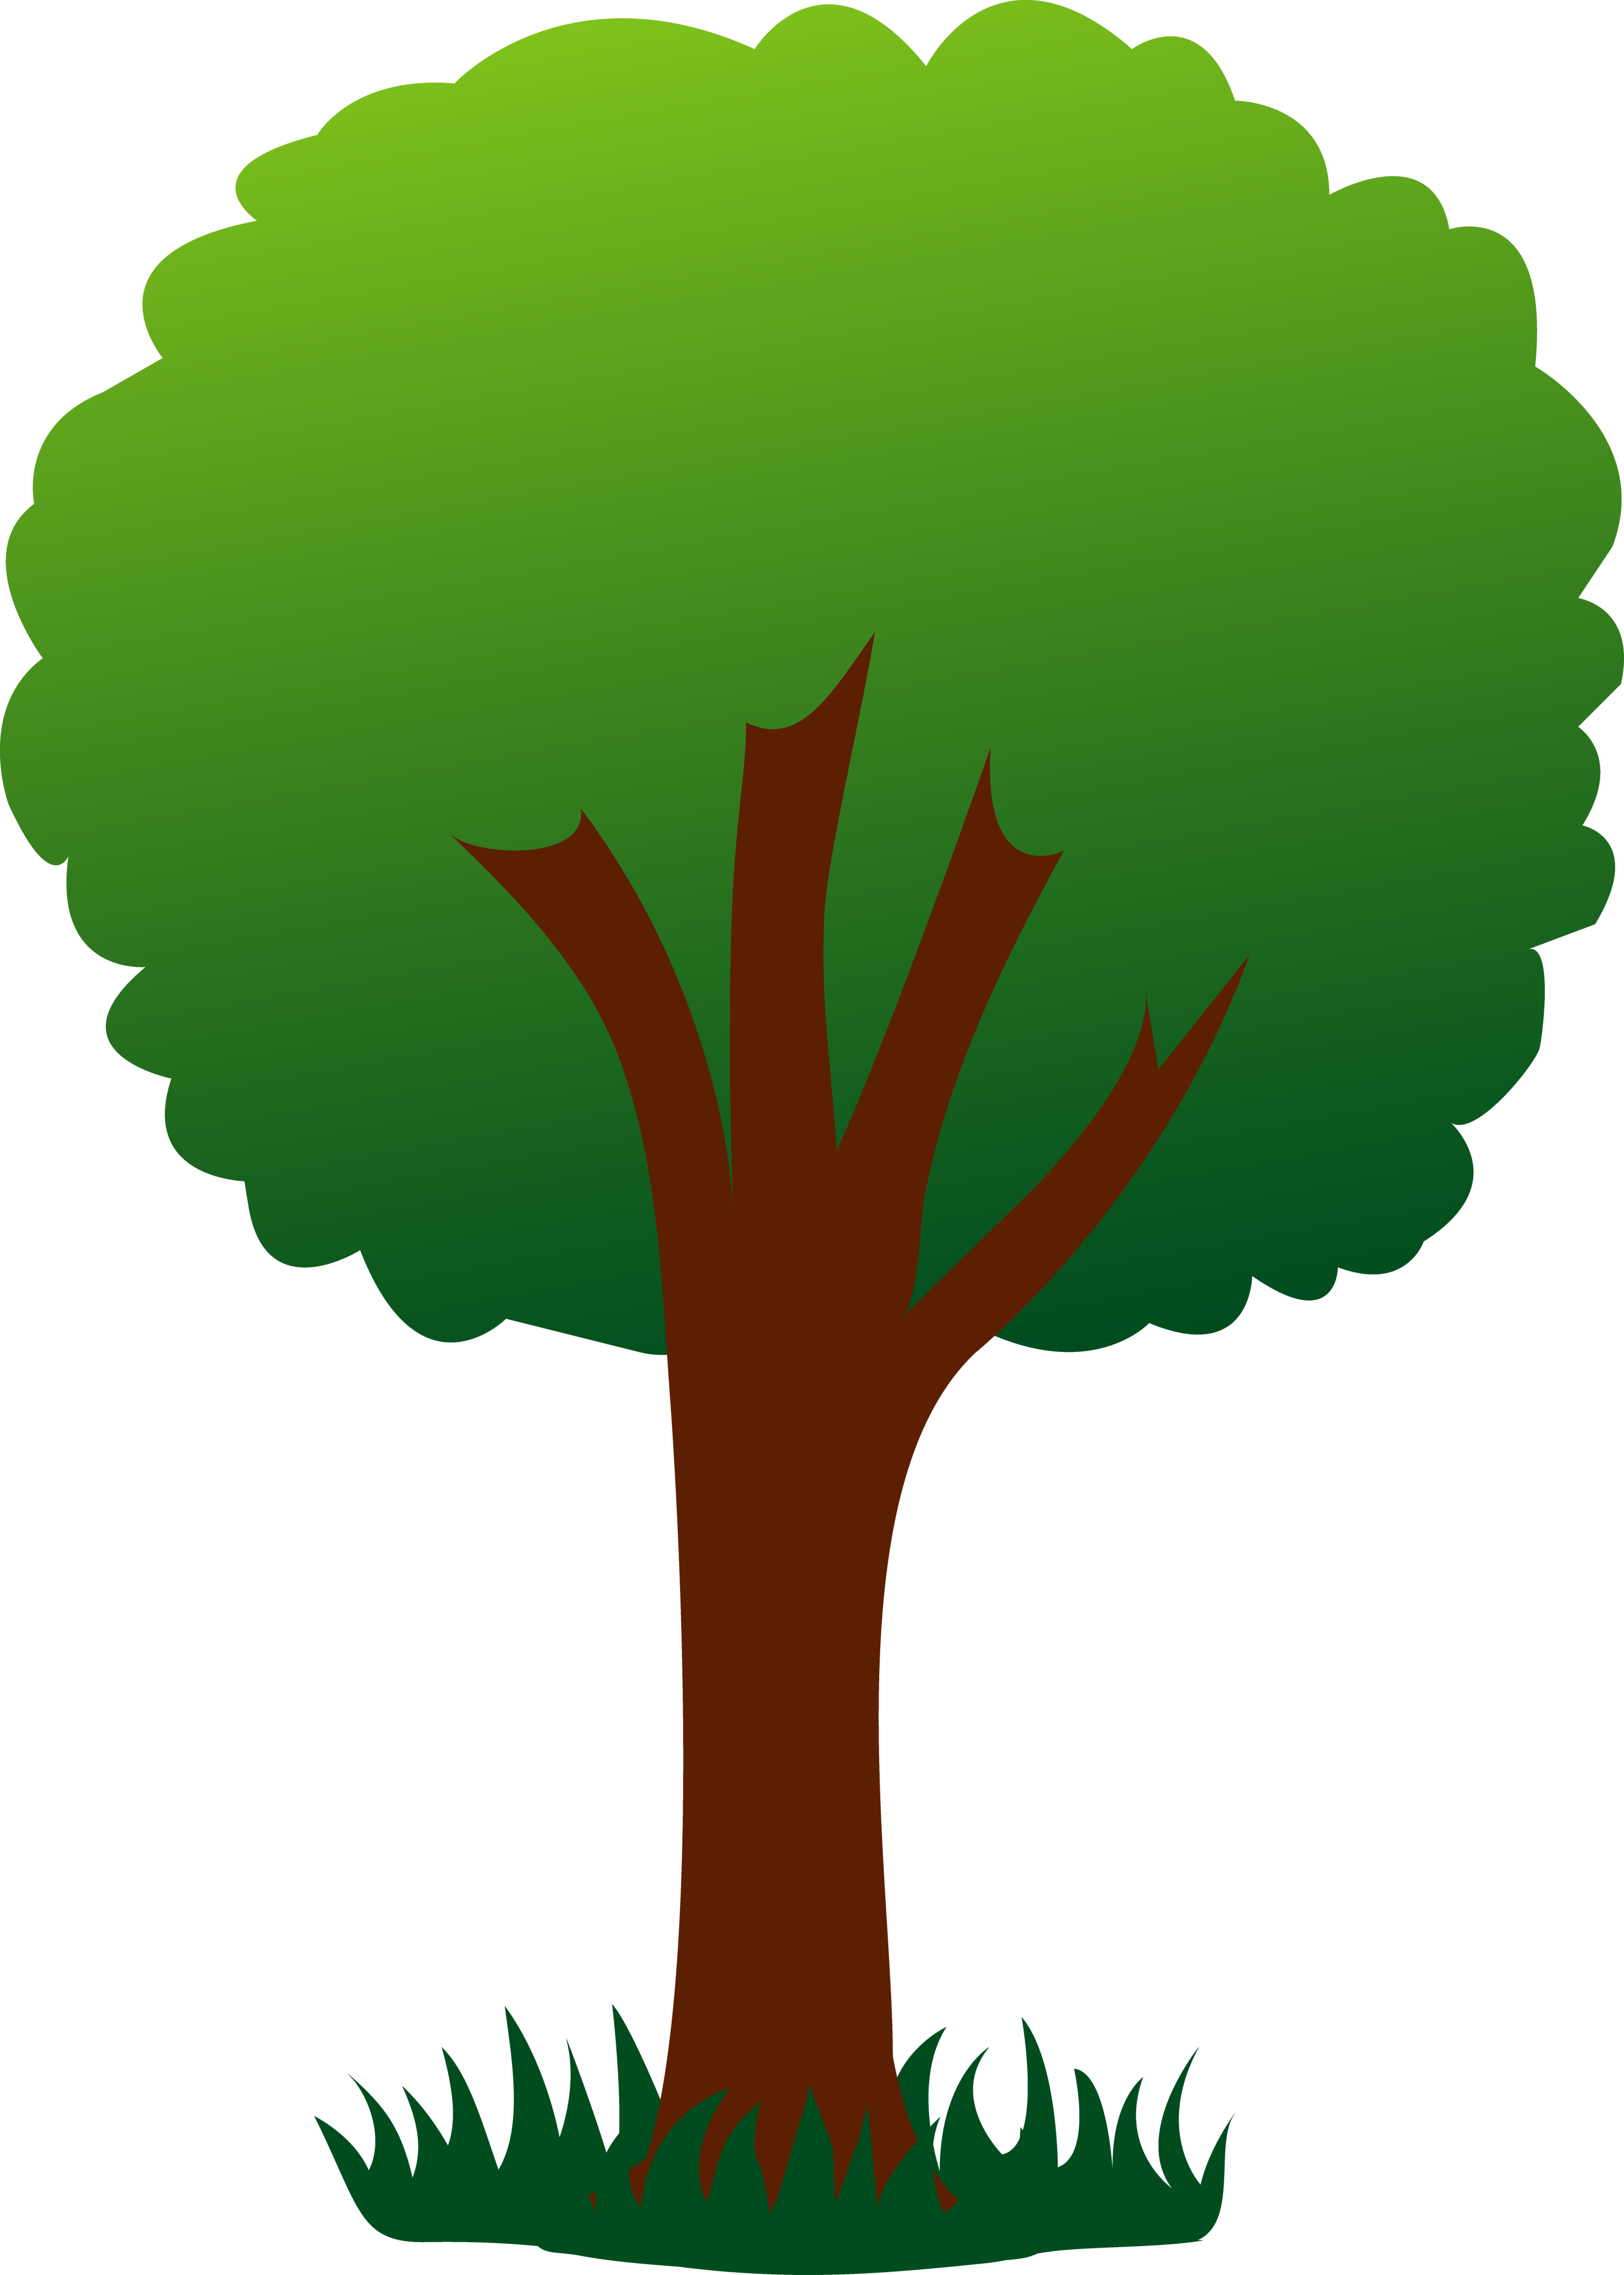 Family tree clipart free images cliparts and